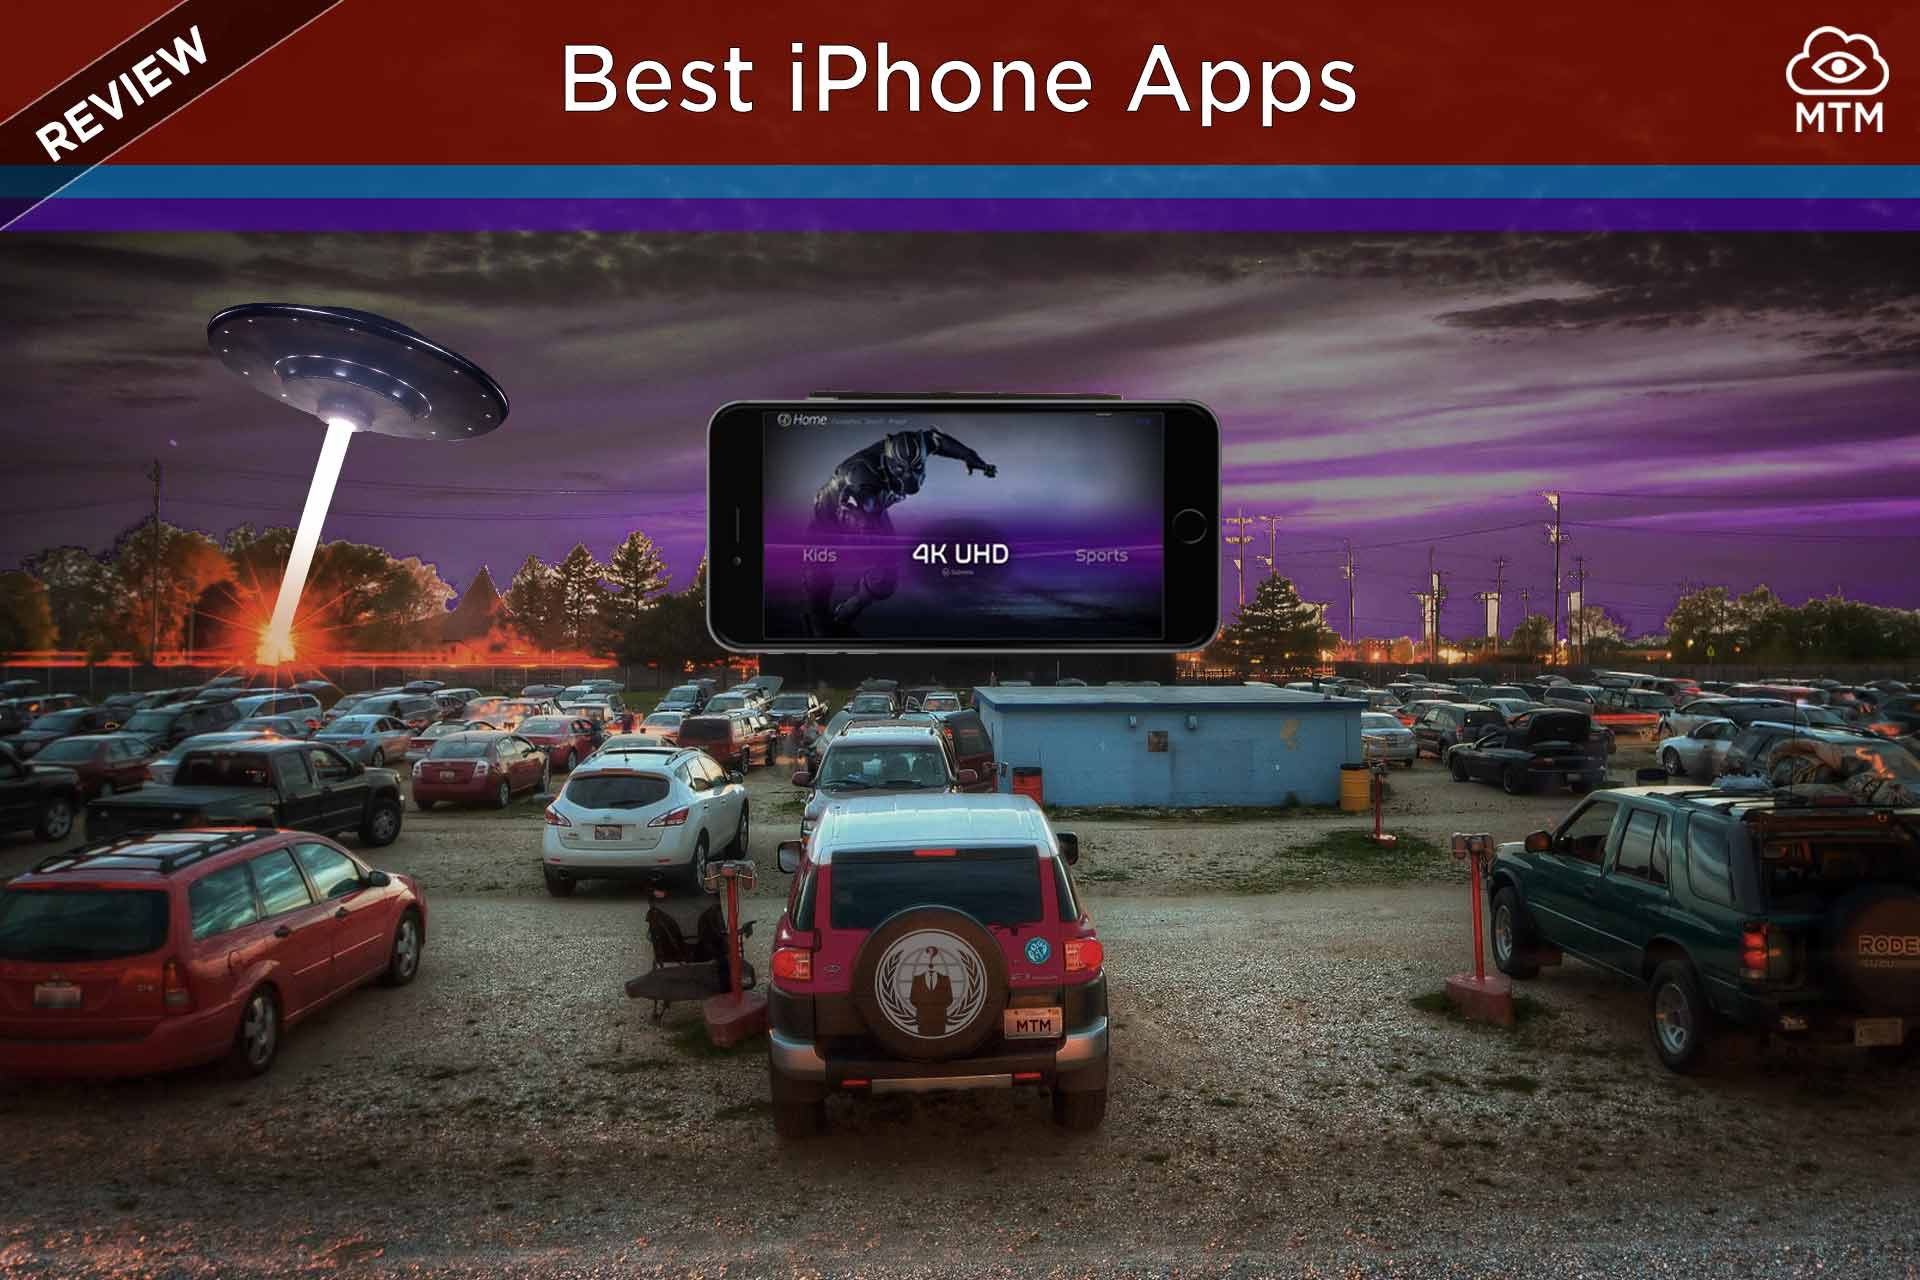 Top 10 Best Free Movie Apps on iPhone, iPad, & Apple TV [July 2019]